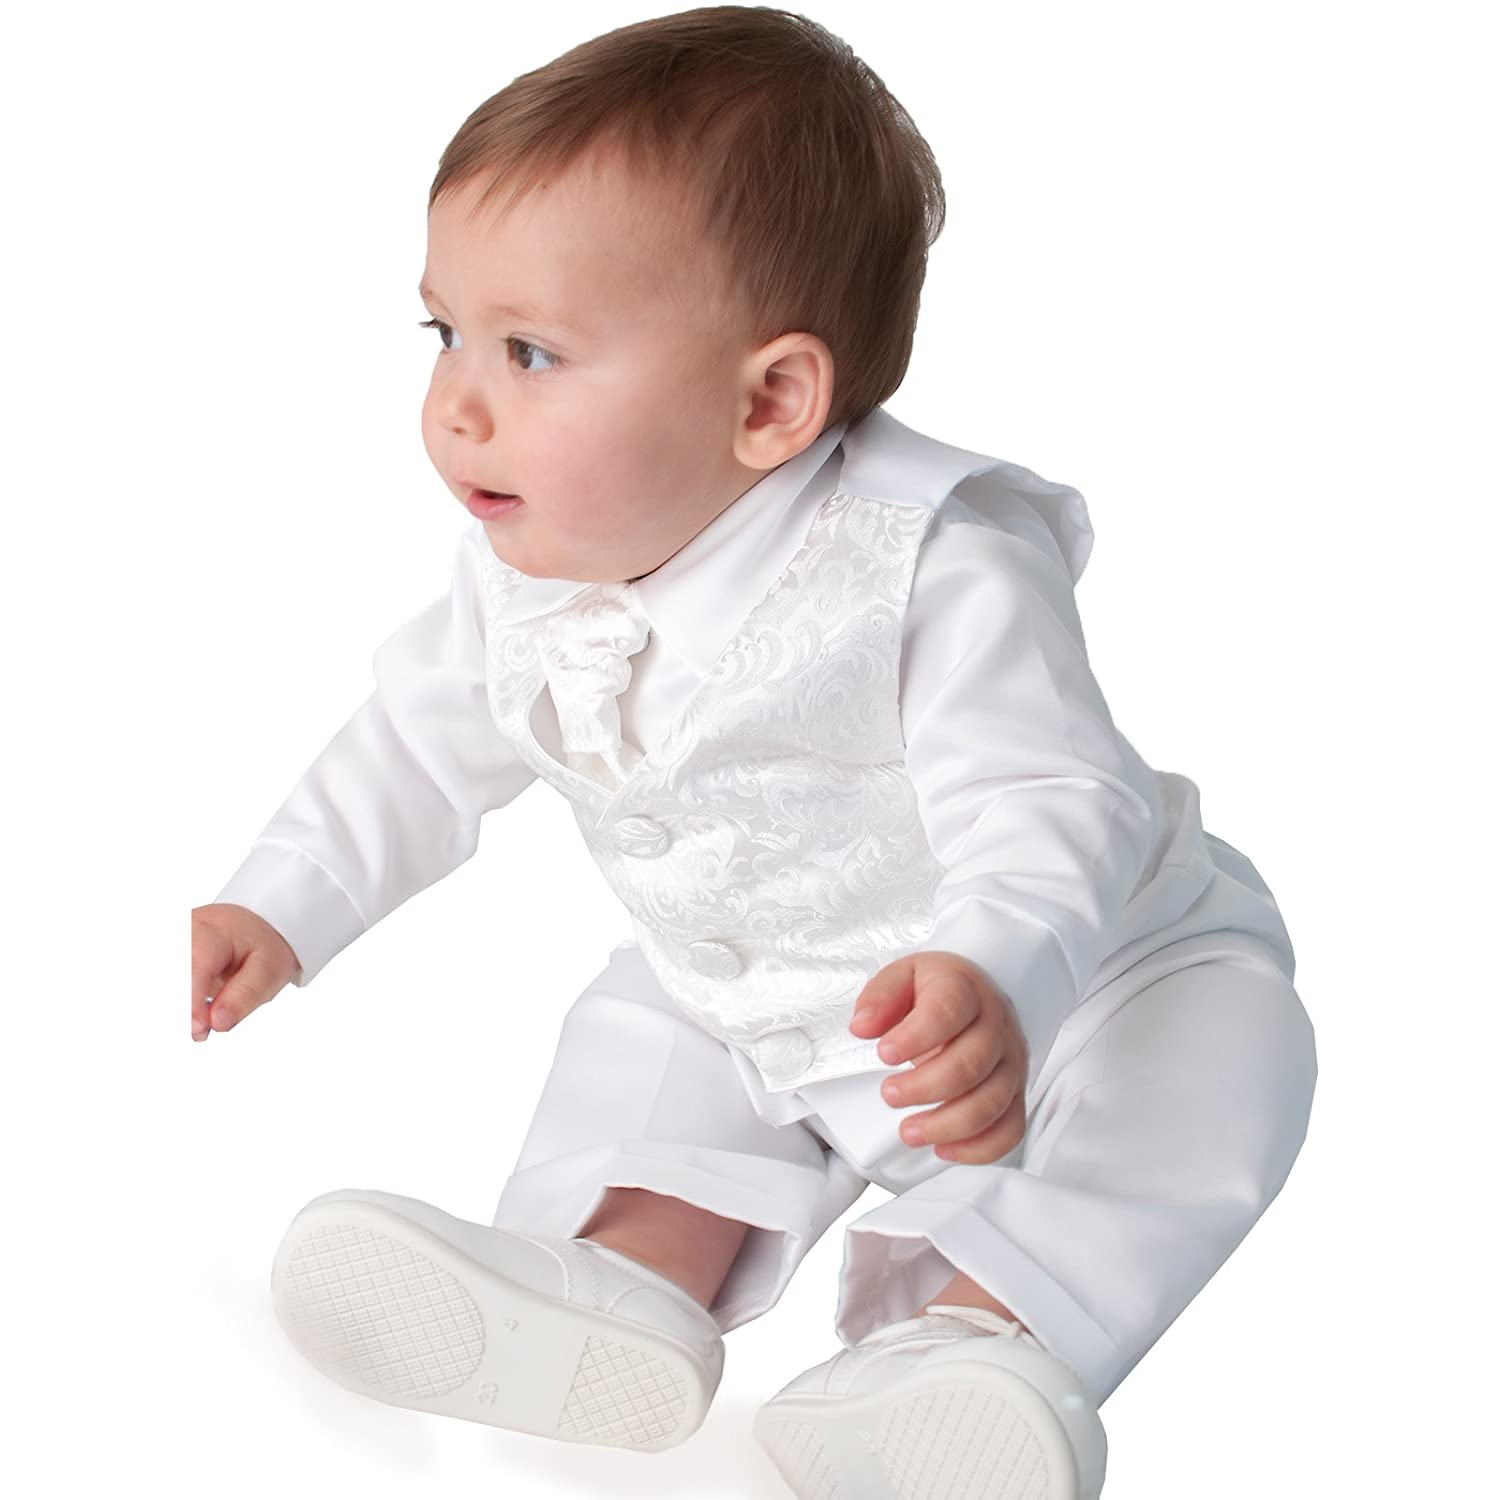 Baby Boys Christening Outfit White